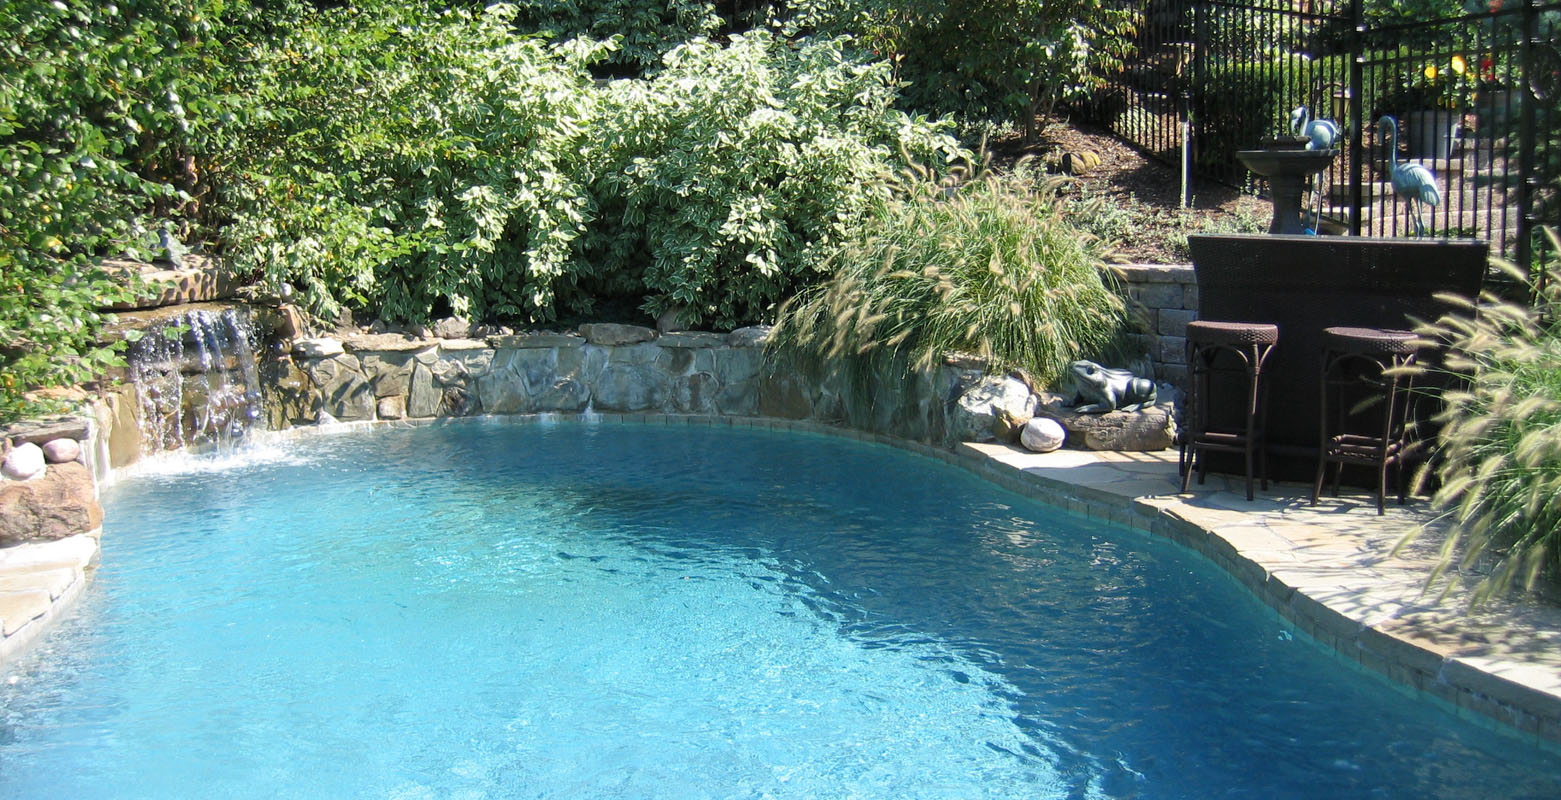 before and after landscape pictures, after, nj swimming pool design, pool waterfall